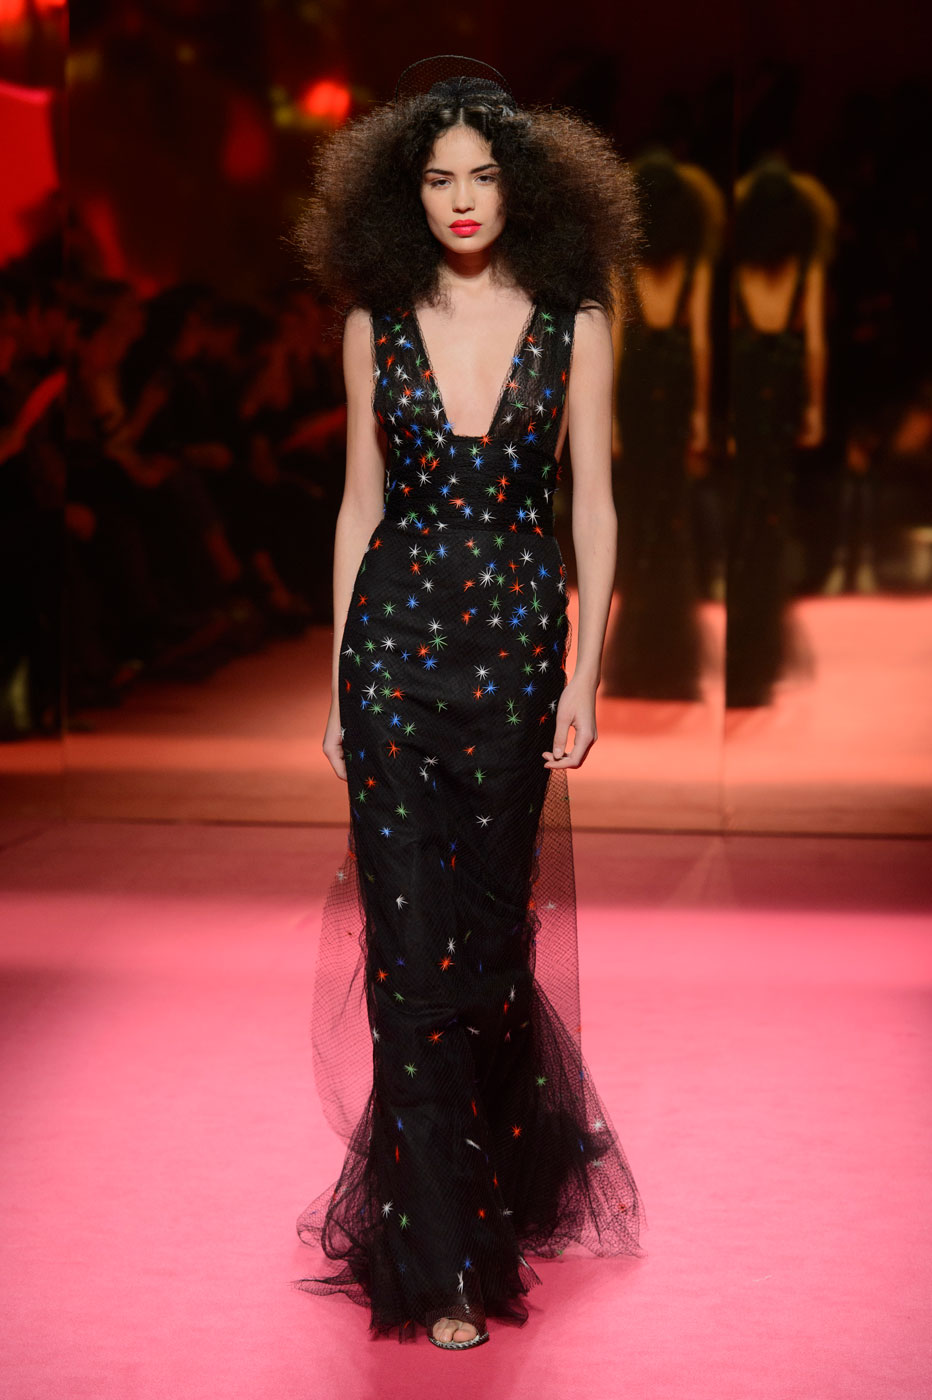 Schiaparelli-fashion-runway-show-haute-couture-paris-spring-summer-2015-the-impression-40